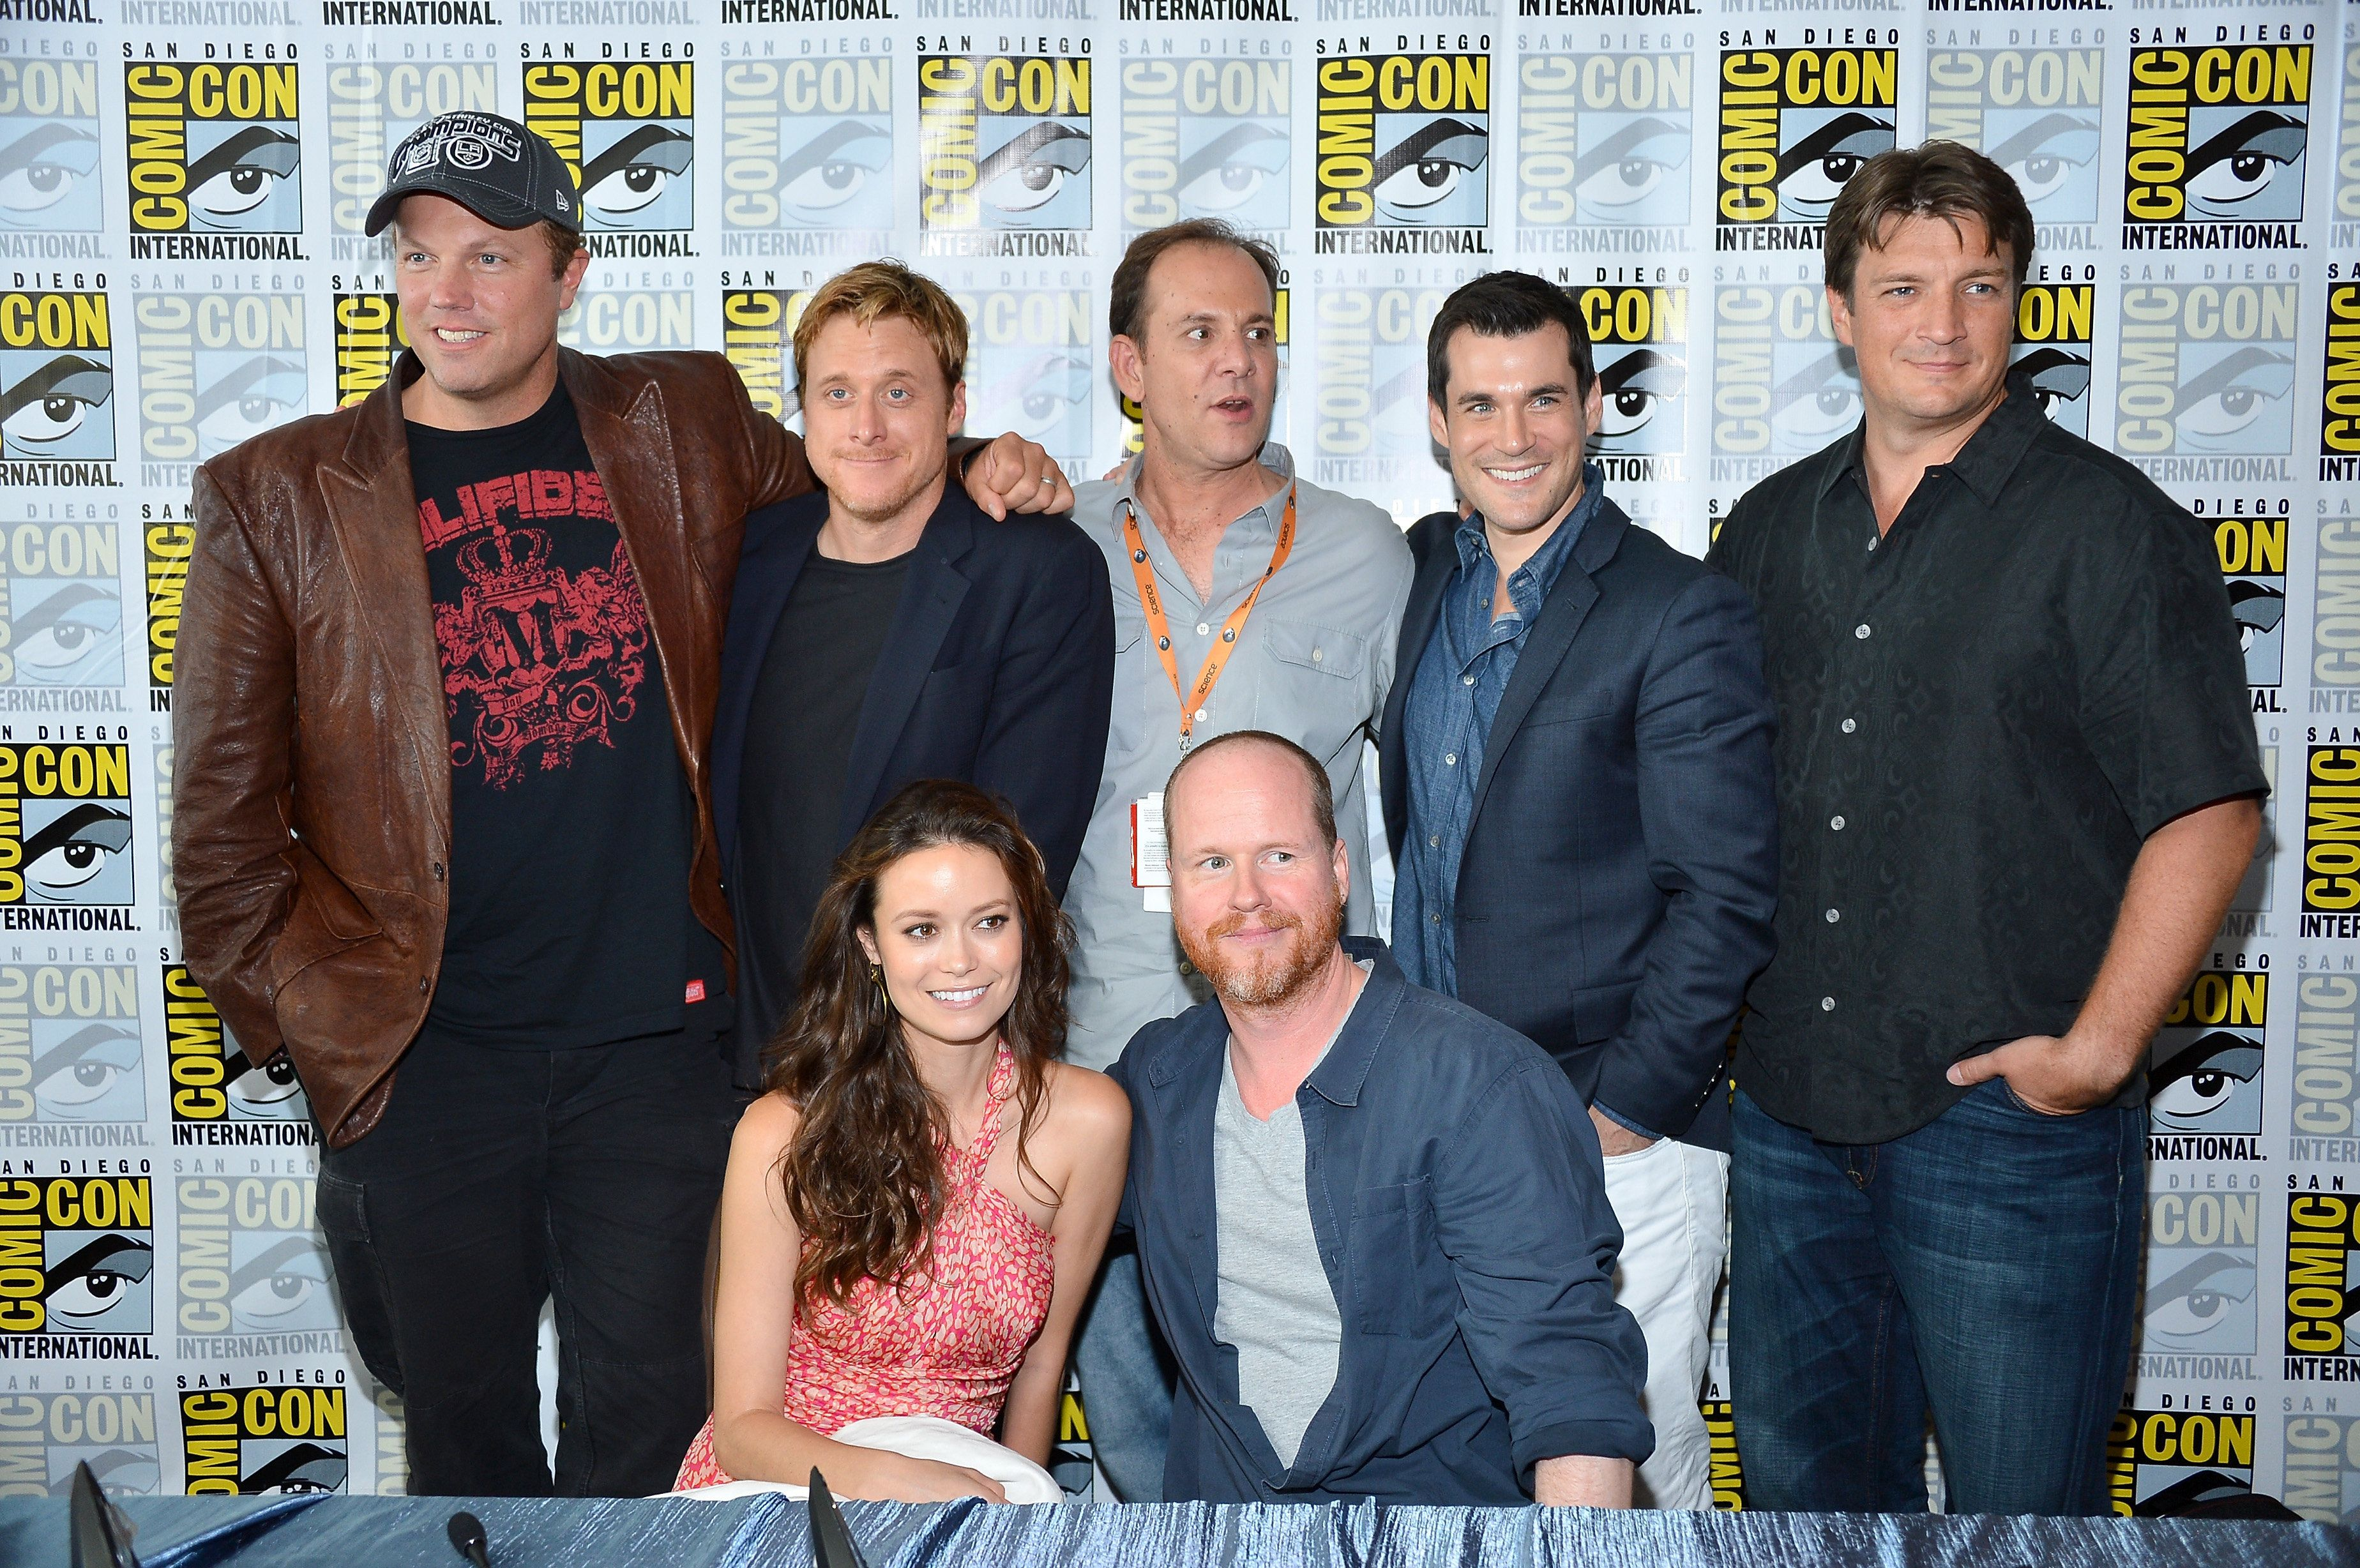 SAN DIEGO, CA - JULY 13:  The Cast of Firefly (Standing L-R) Adam Baldwin, Alan Tudyk Tim Minear. Sean Maher, Nathan Fillion, (Kneeling) Summer Glau and Joss Whedon at the 'Firefly' 10 Year Anniversary Reunion Press Conference during Comic-Con International 2012 held at the Hilton San Diego Bayfront Hotel on July 13, 2012 in San Diego, California.  (Photo by Frazer Harrison/Getty Images)